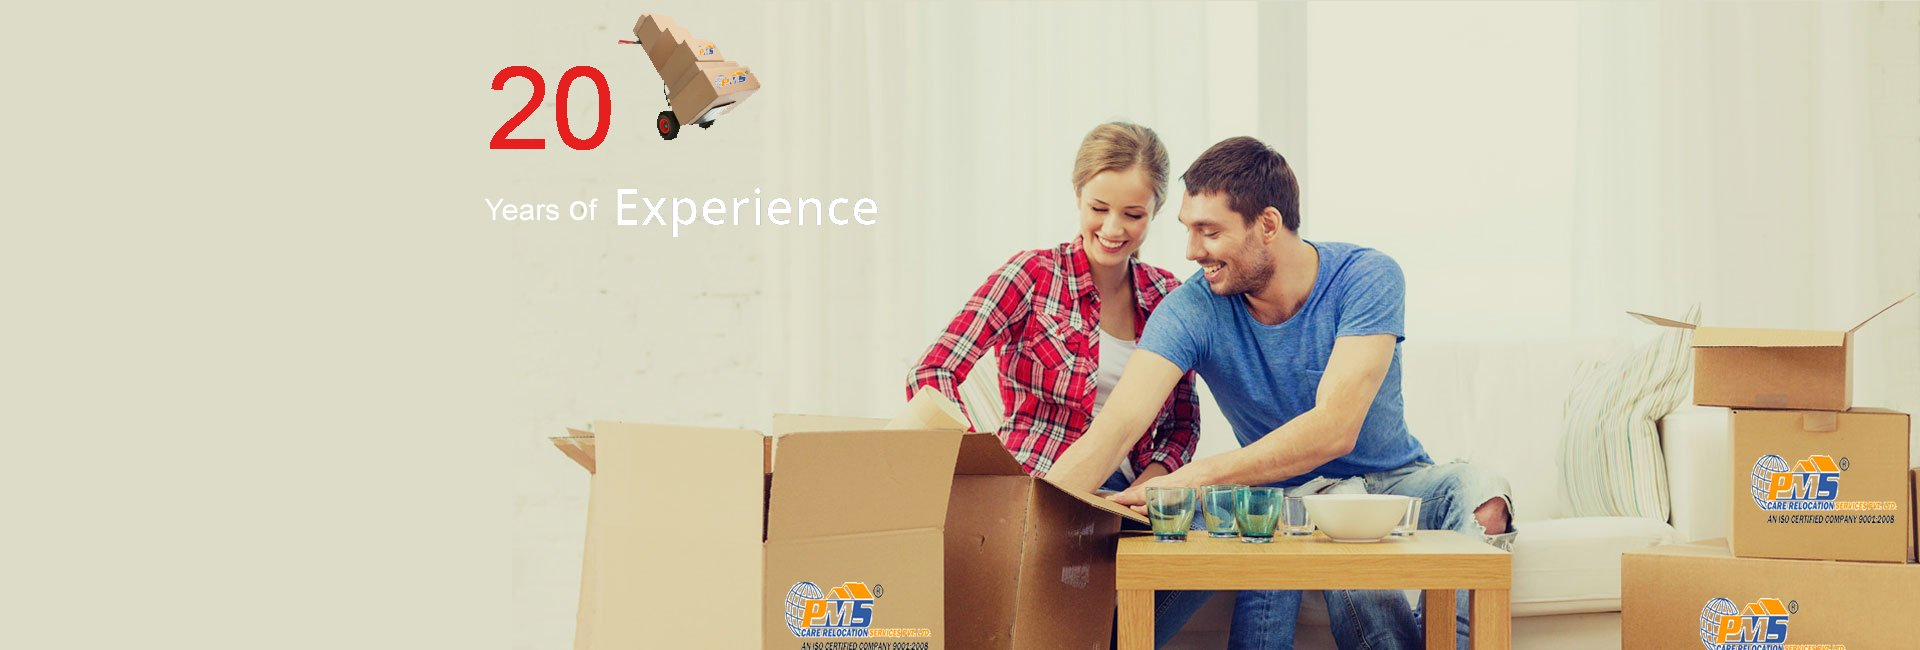 pune packers and movers, packers movers pune